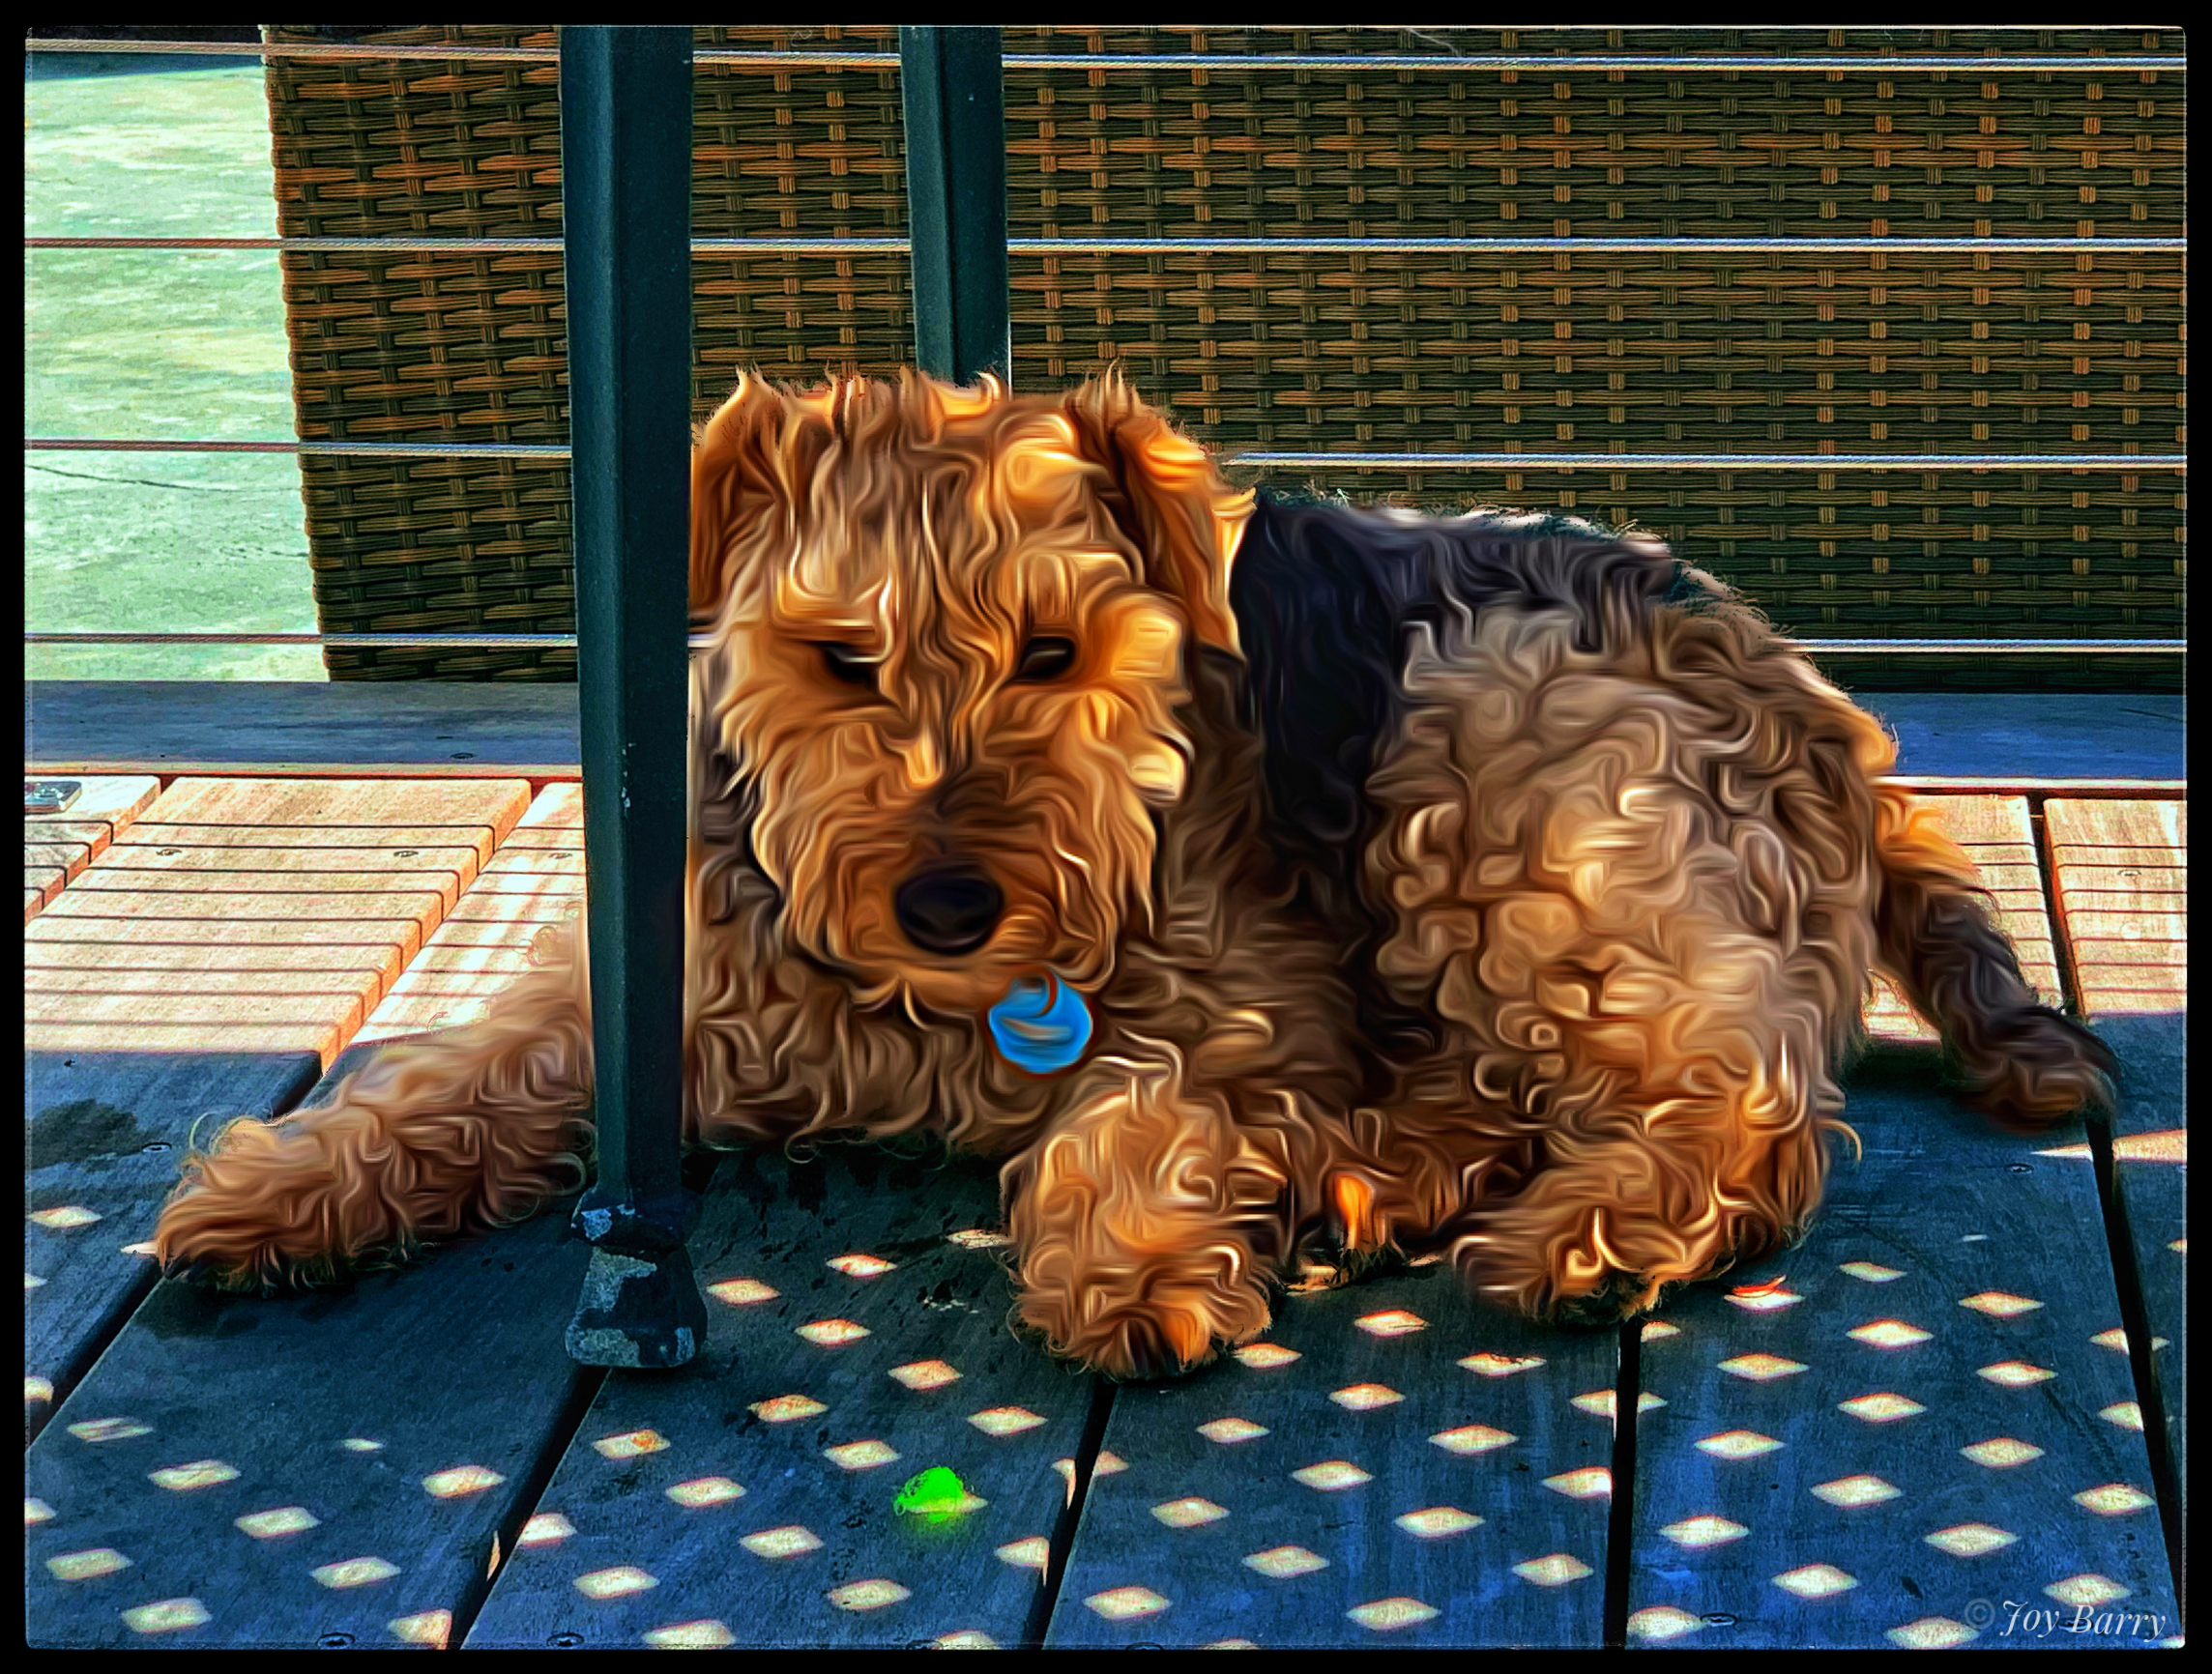 """April 4, 2019 - Penny Weatherbee hanging out on the deck after a rousing game of """"chuck-it""""."""